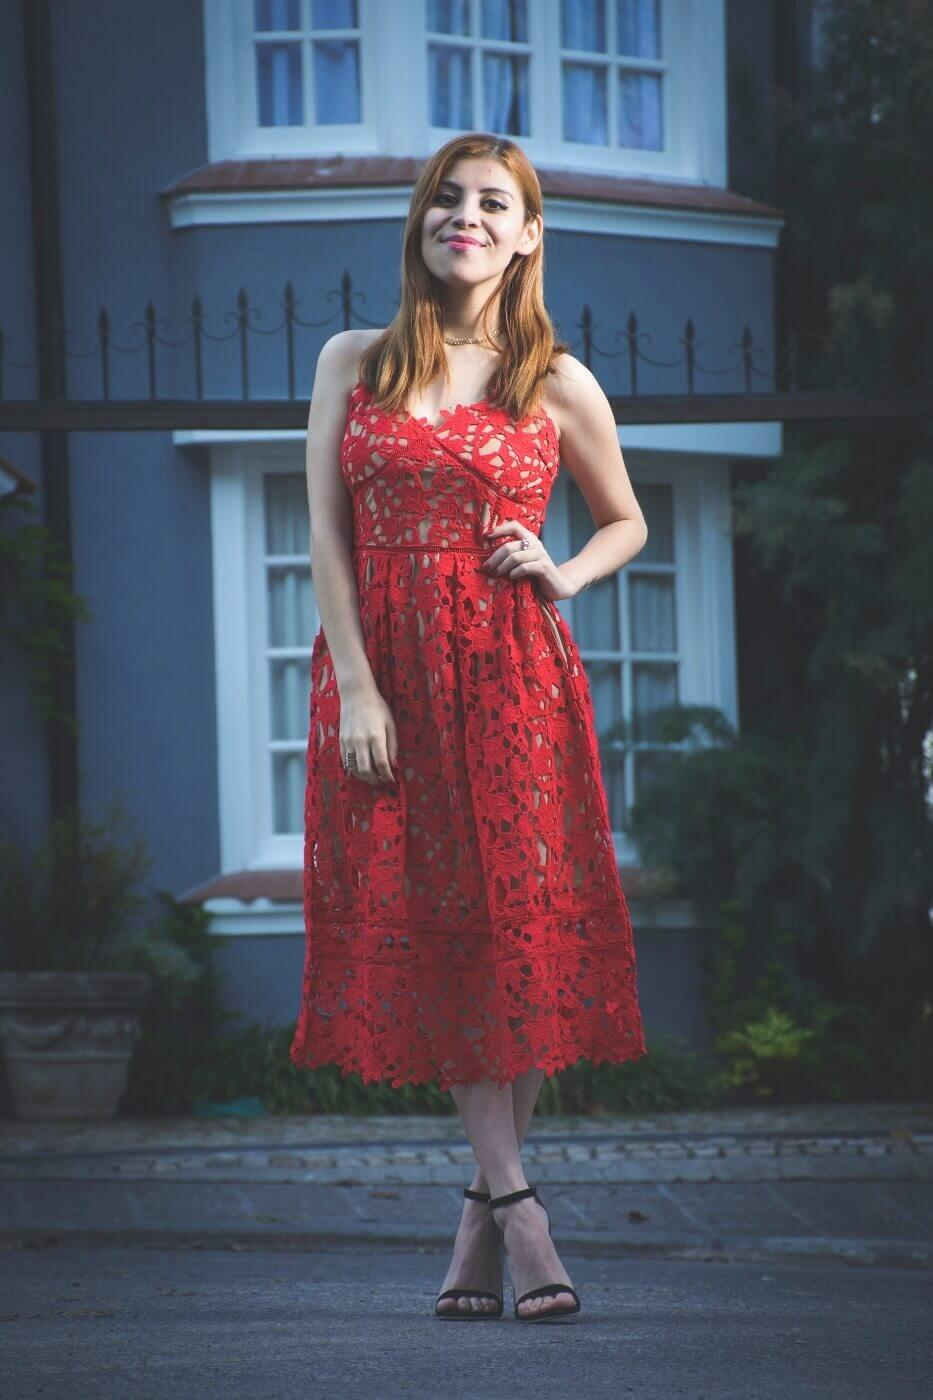 zaful red lace crochet midi lenght dress valentines day outfit ideas summer 2017 trends deborah ferrero style by deb10